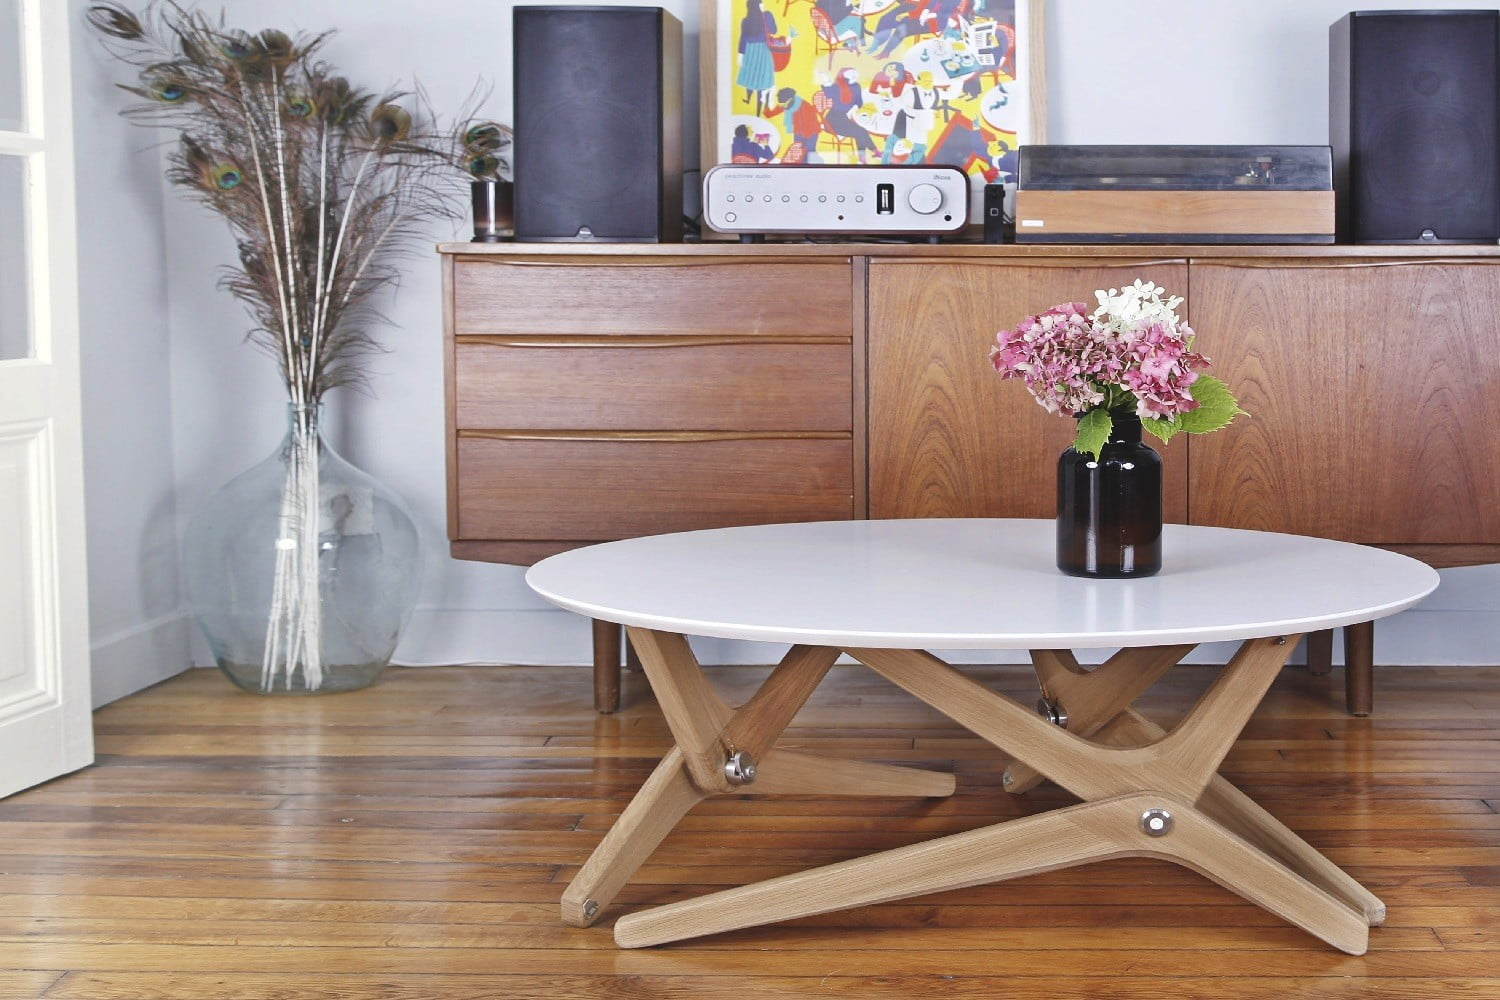 Ideal Shape shifting table can transform from coffee setting to dining table in a second